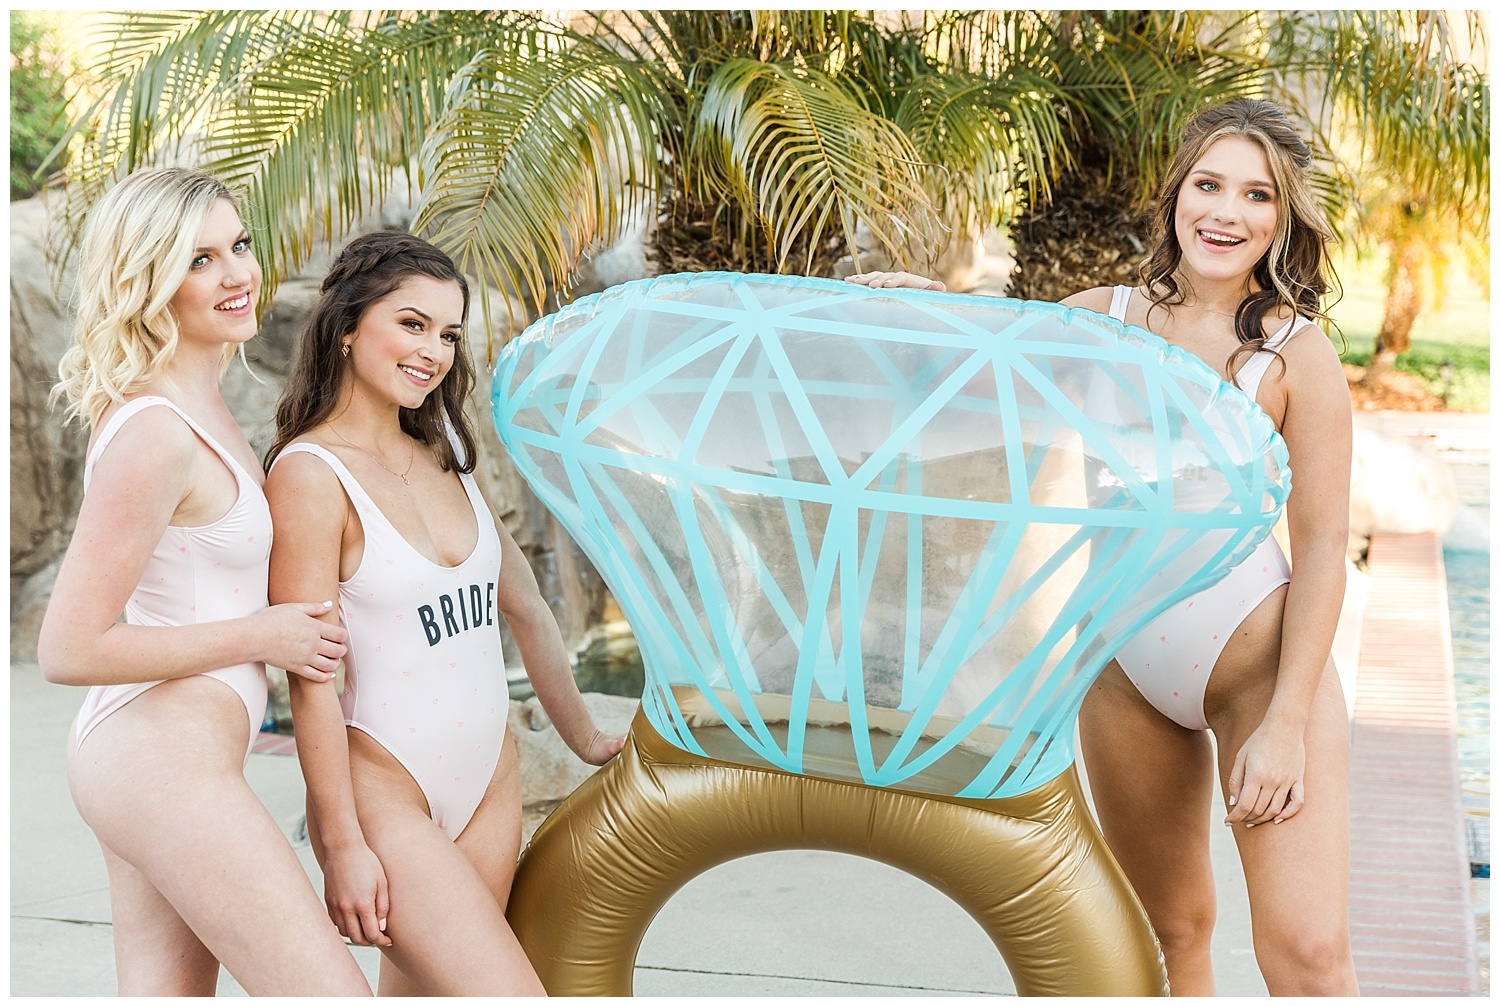 Mod-Thread-swimsuits-bride-tribe-bride-pool-float.jpg